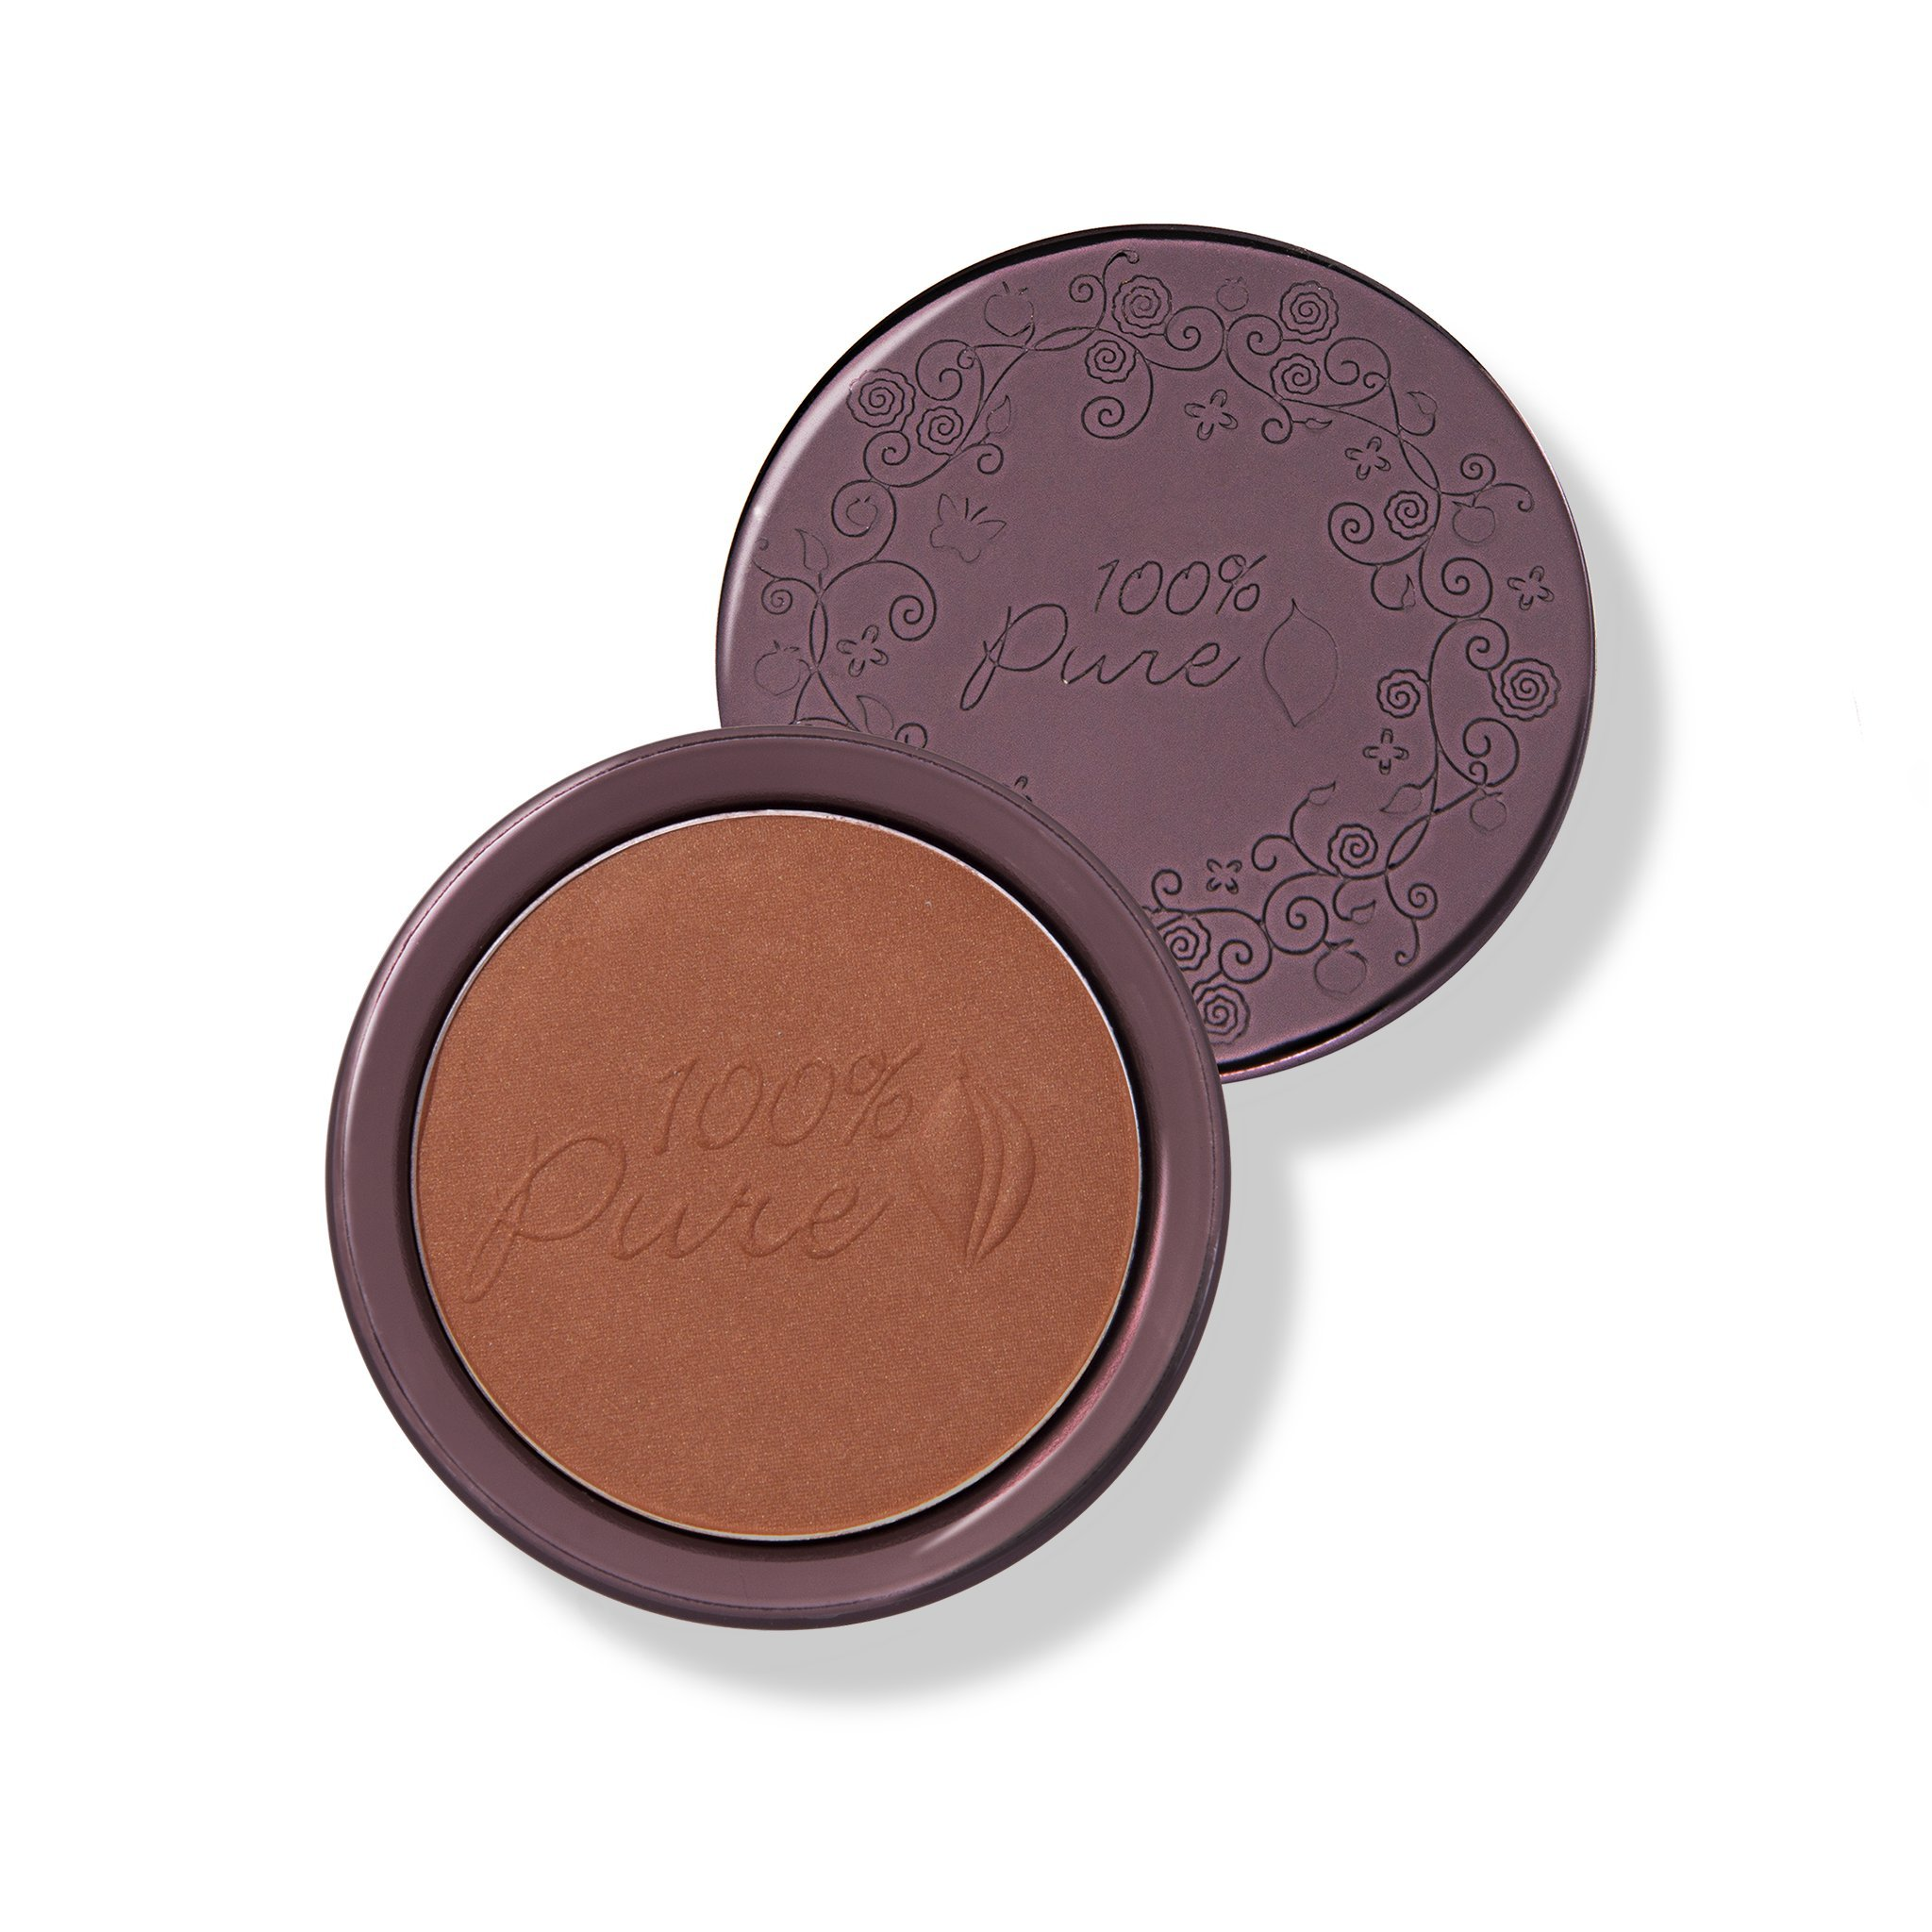 100% Pure Cocoa Pigmented Bronzer - Cocoa Glow by 100% PURE (Image #2)